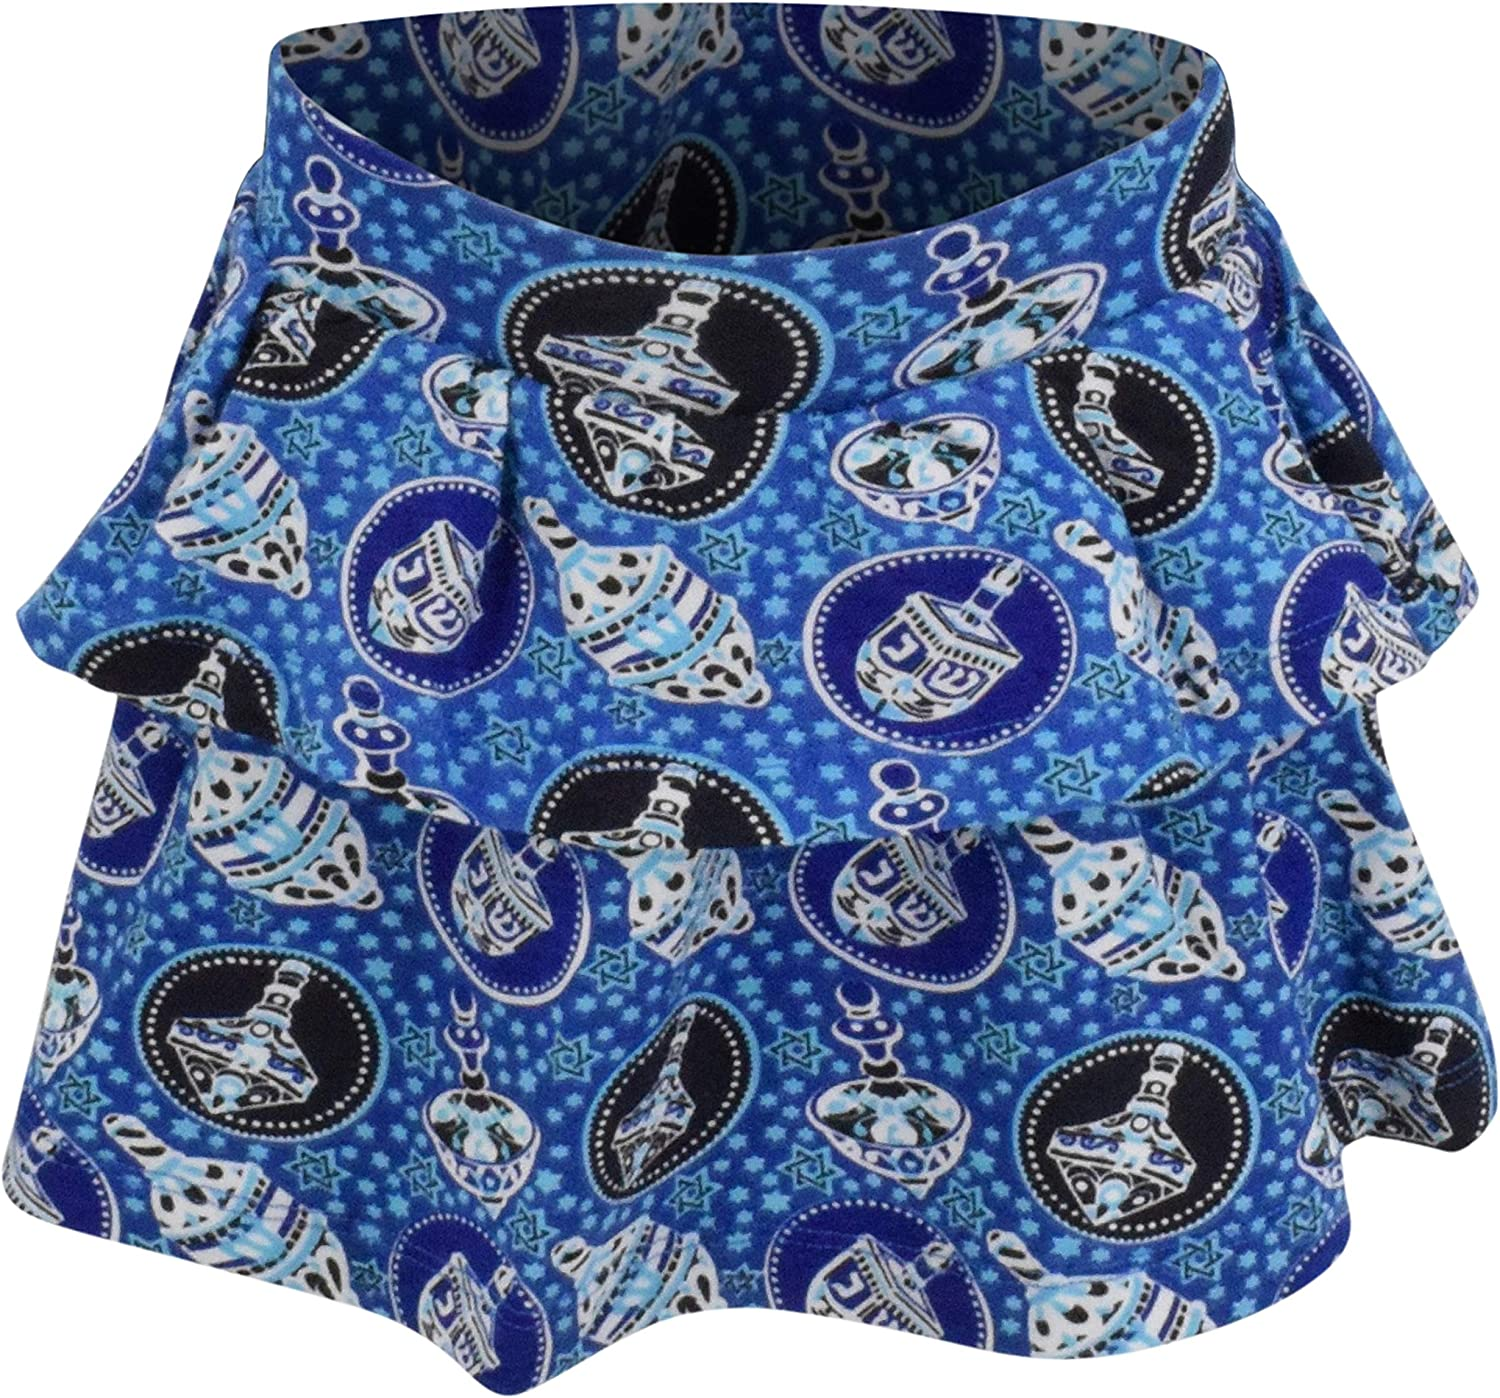 Unique Baby Girls Happy Hanukkah Dreidel Print Skirt Dress